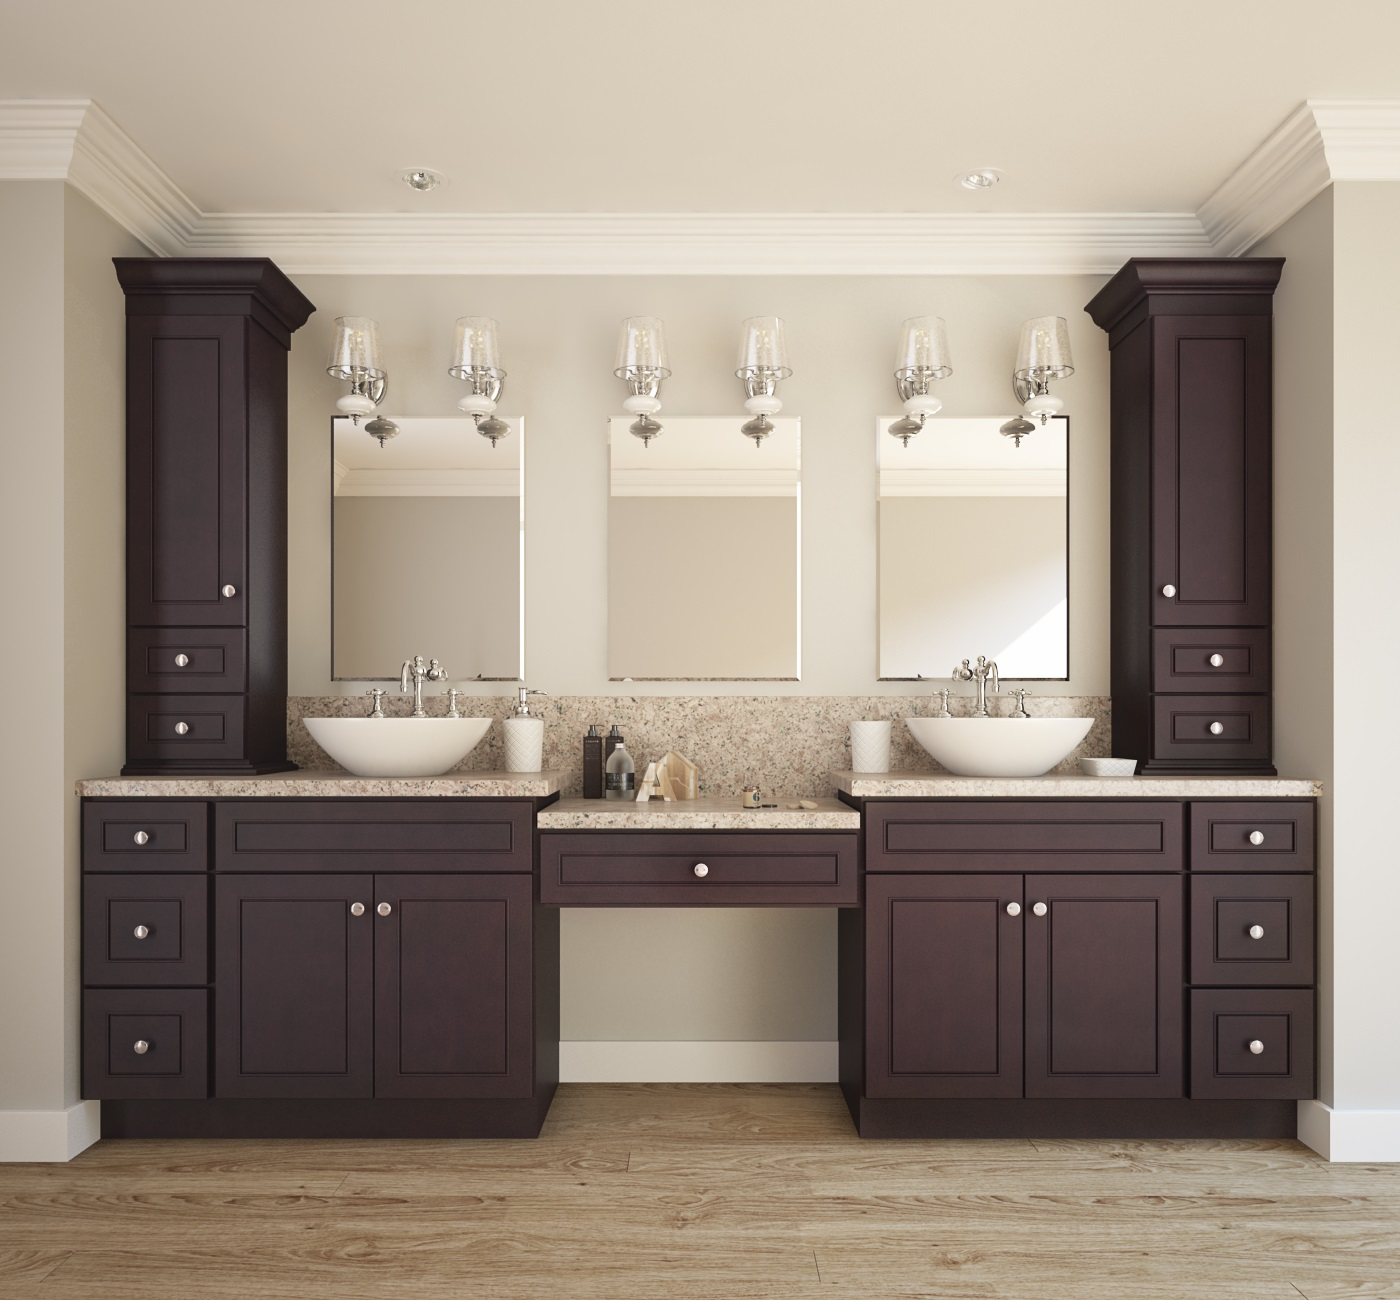 Ready to Assemble Bathroom Vanities & Cabinets - Bathroom Vanities ...